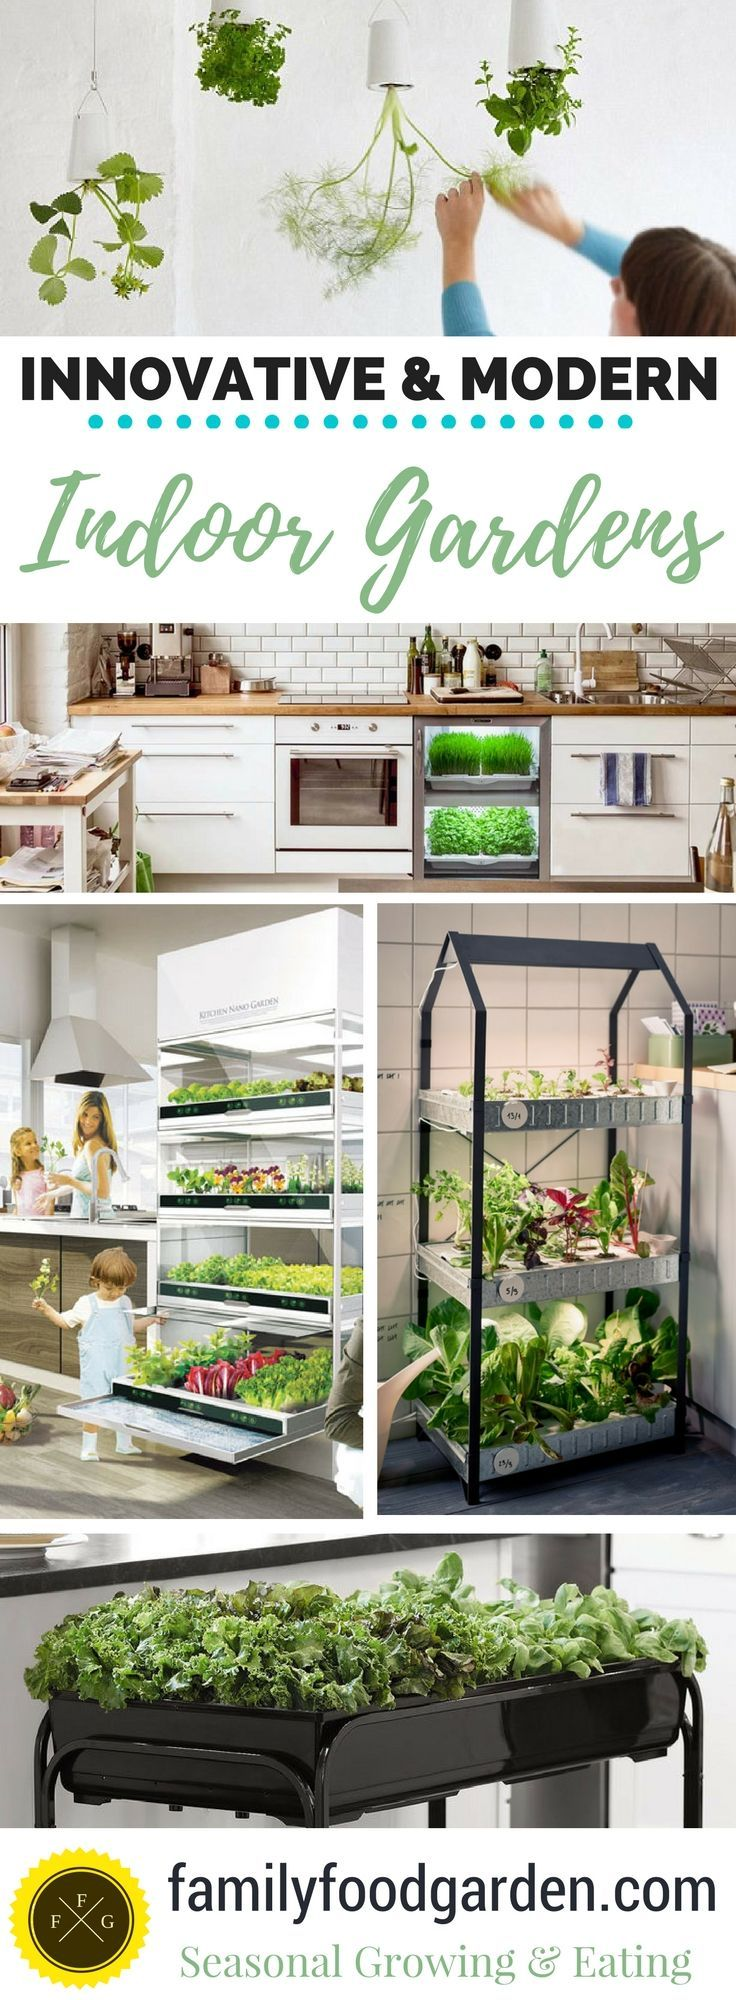 Indoor Gardening- Grow with the ways of the future ähnliche tolle Projekte und Ideen wie im Bild vorgestellt findest du auch in unserem Magazin . Wir freuen uns auf deinen Besuch. Liebe Grüße